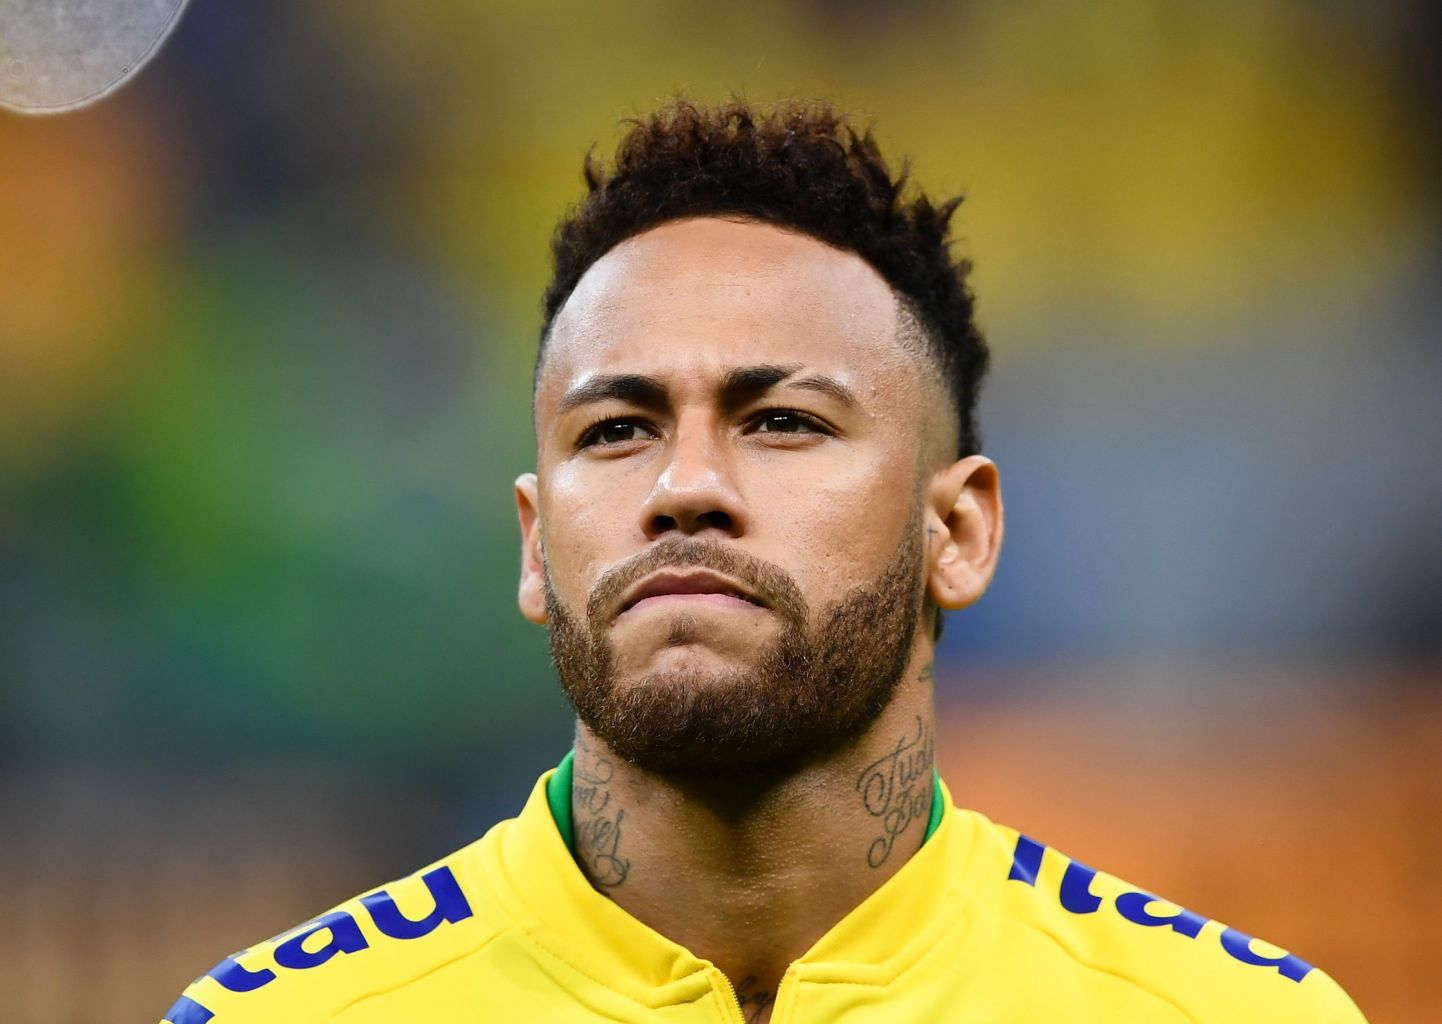 Nike 'very concerned' about rape accusation against Brazilian soccer star Neymar